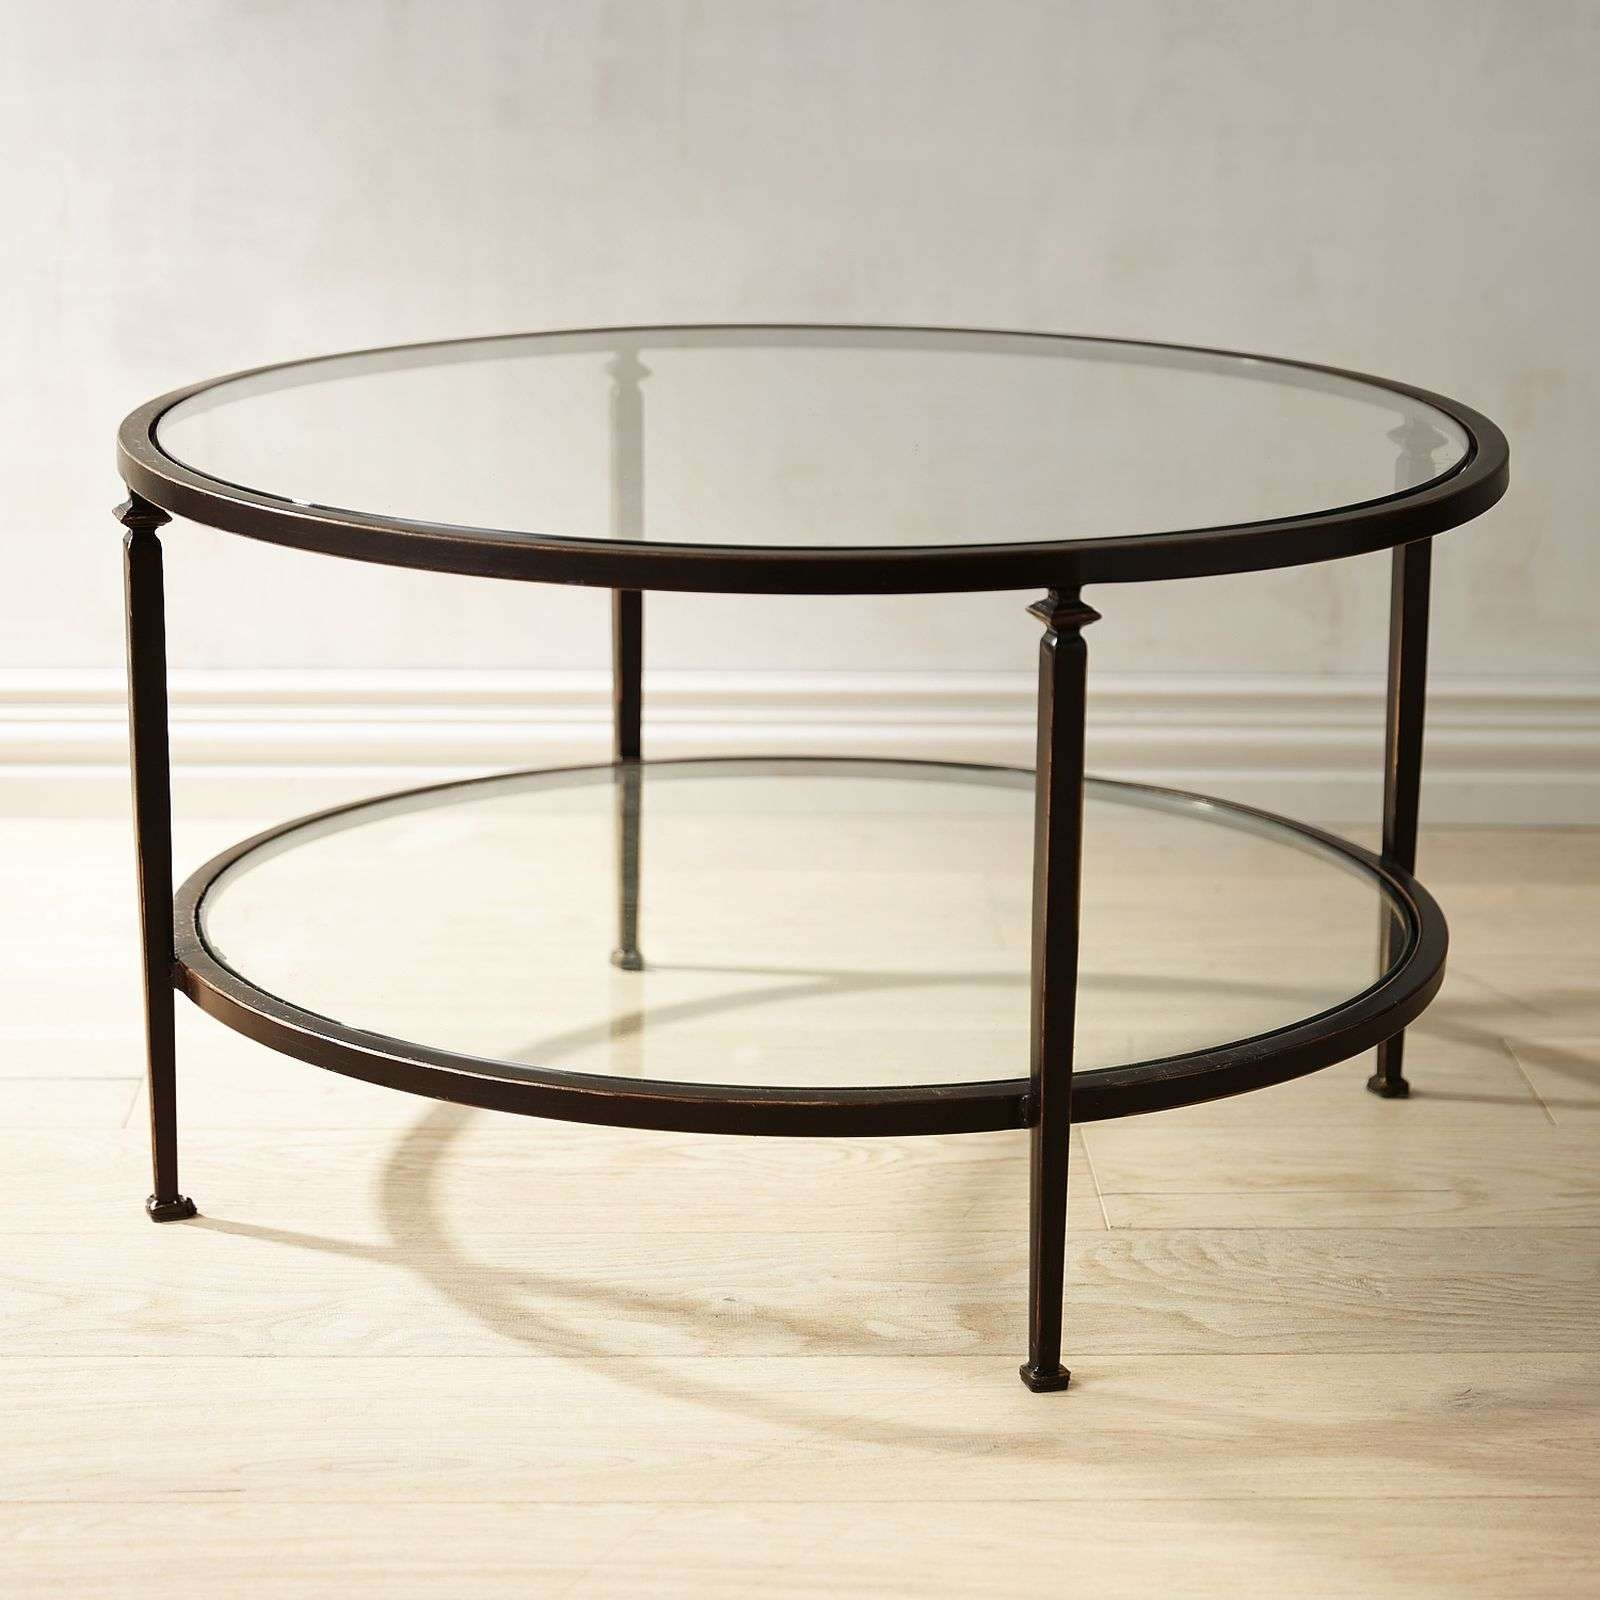 Coffee Table : Awesome Glass And Metal Coffee Table Wood Coffee For 2018 Metal Coffee Tables With Glass Top (View 3 of 20)